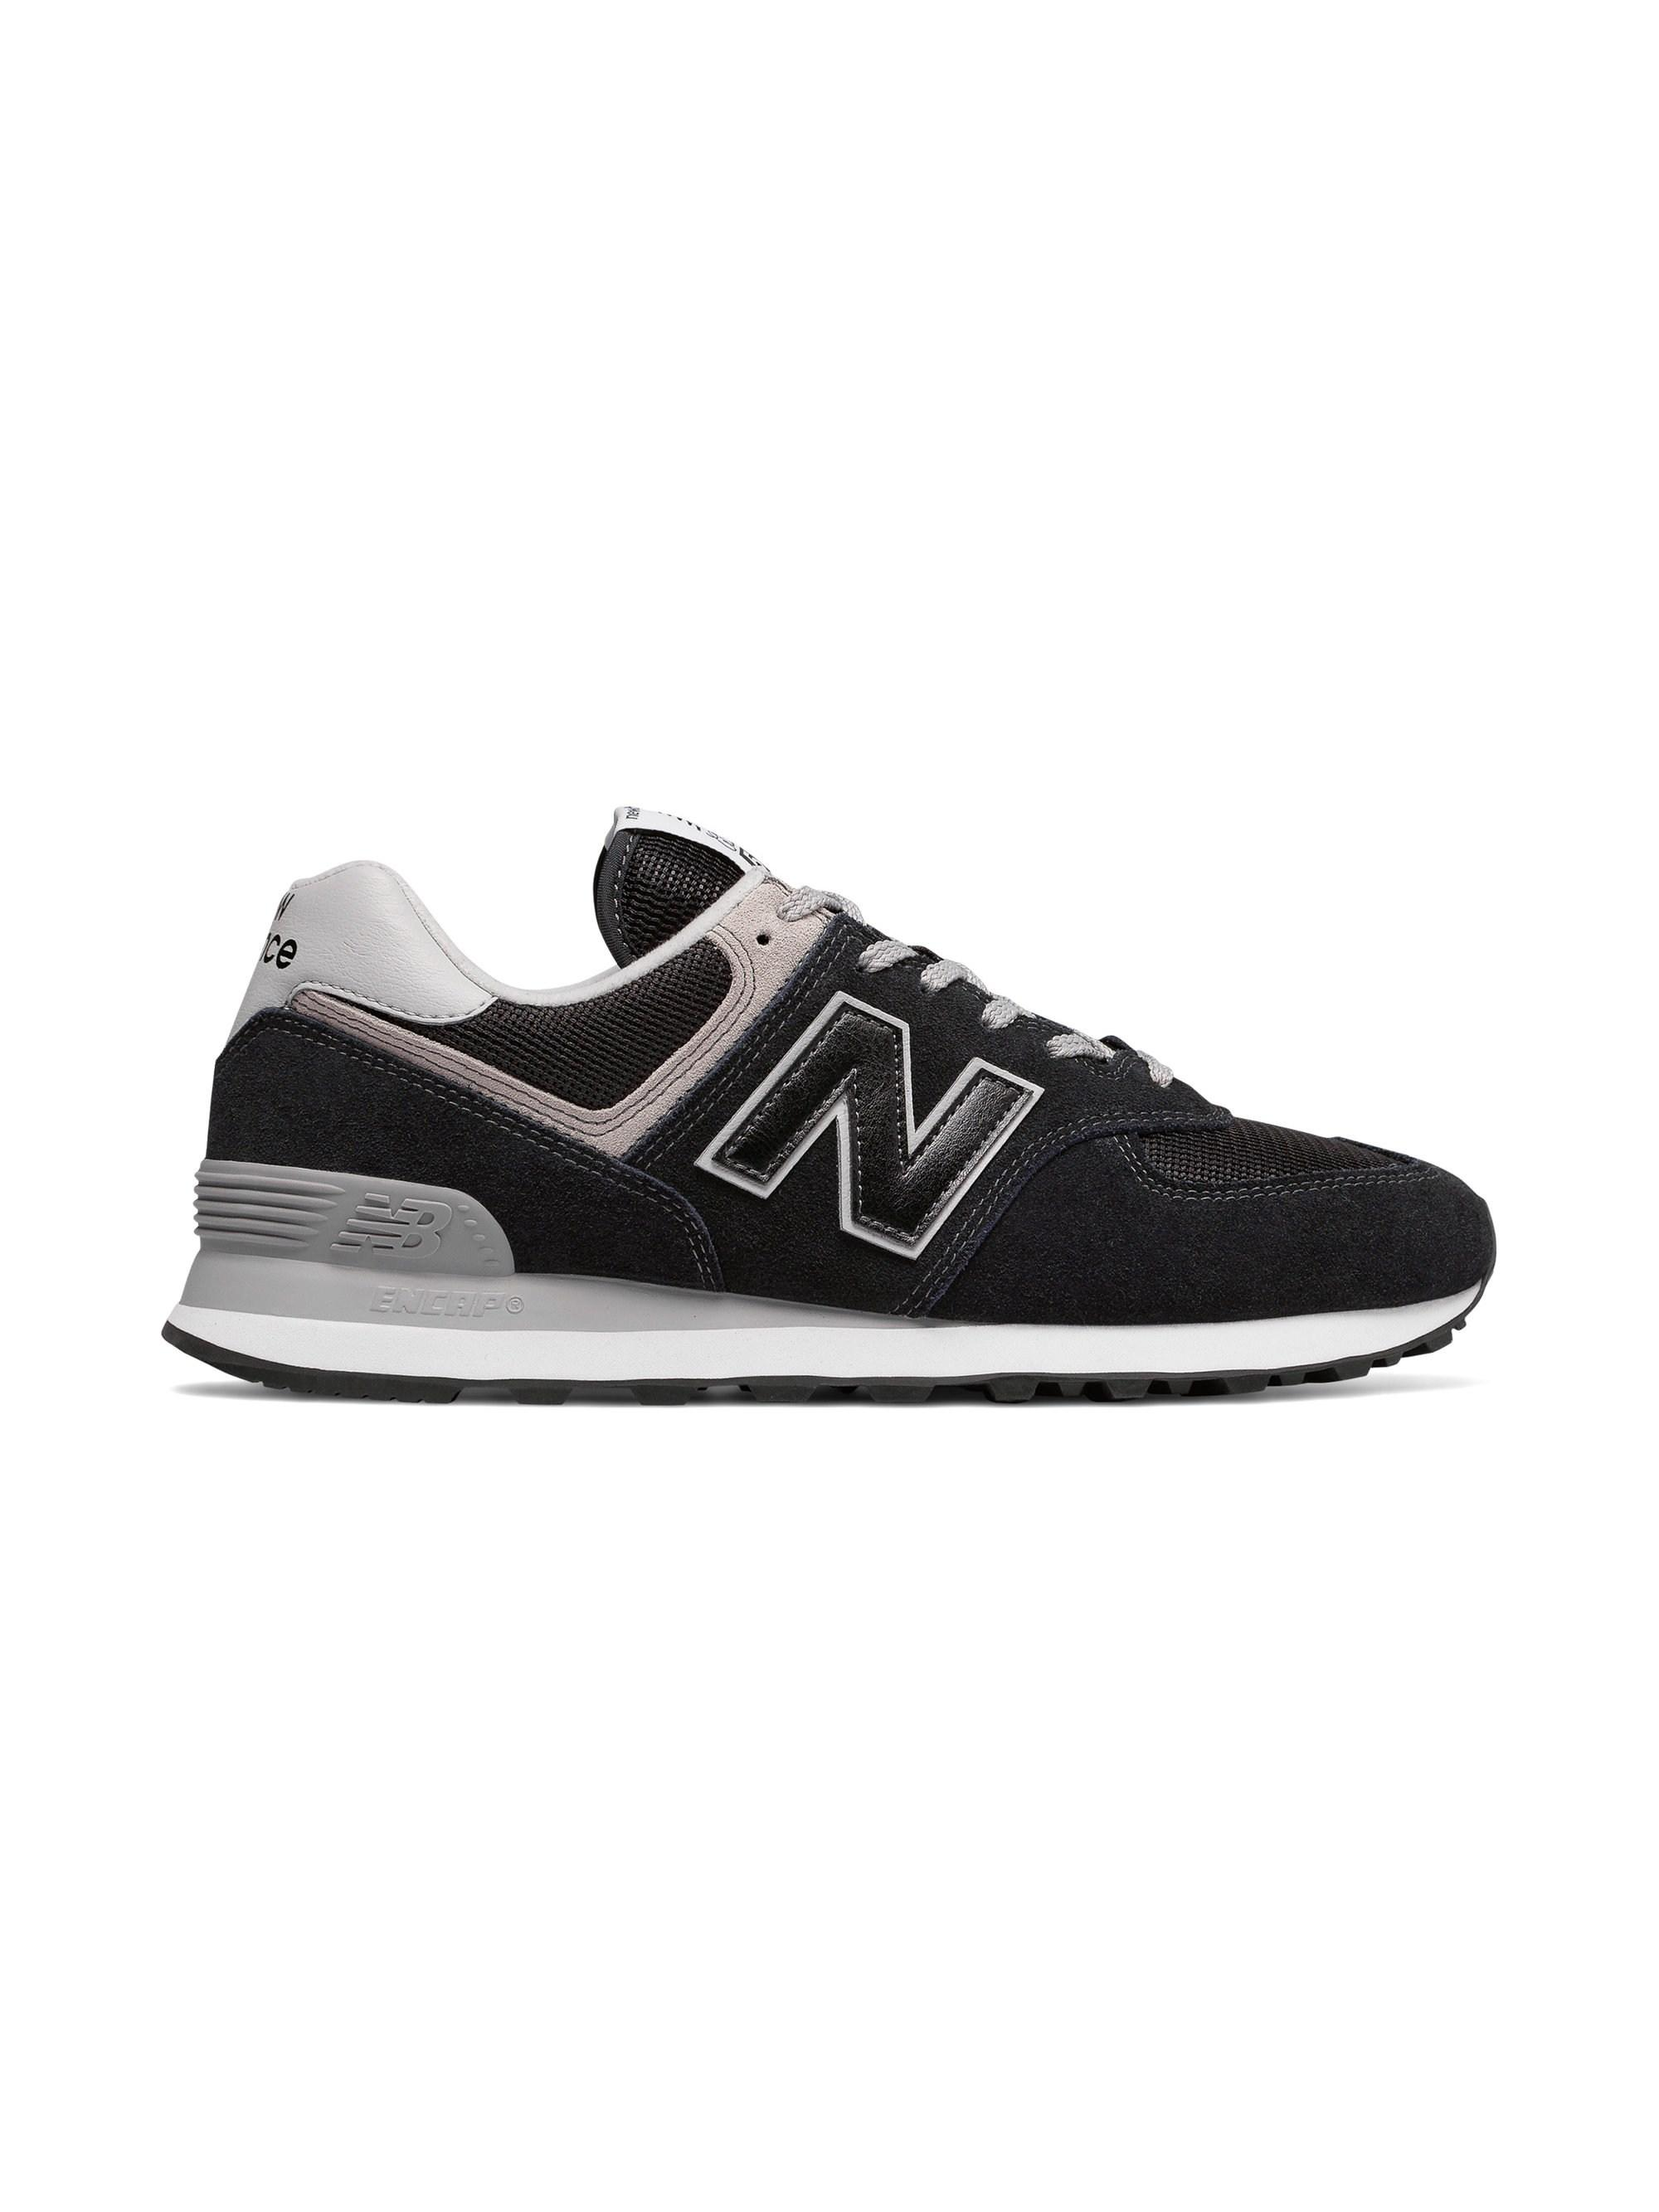 a19b03405d566 New Balance Men's Classic 574 Suede Lace Up Sneakers in Black for ...